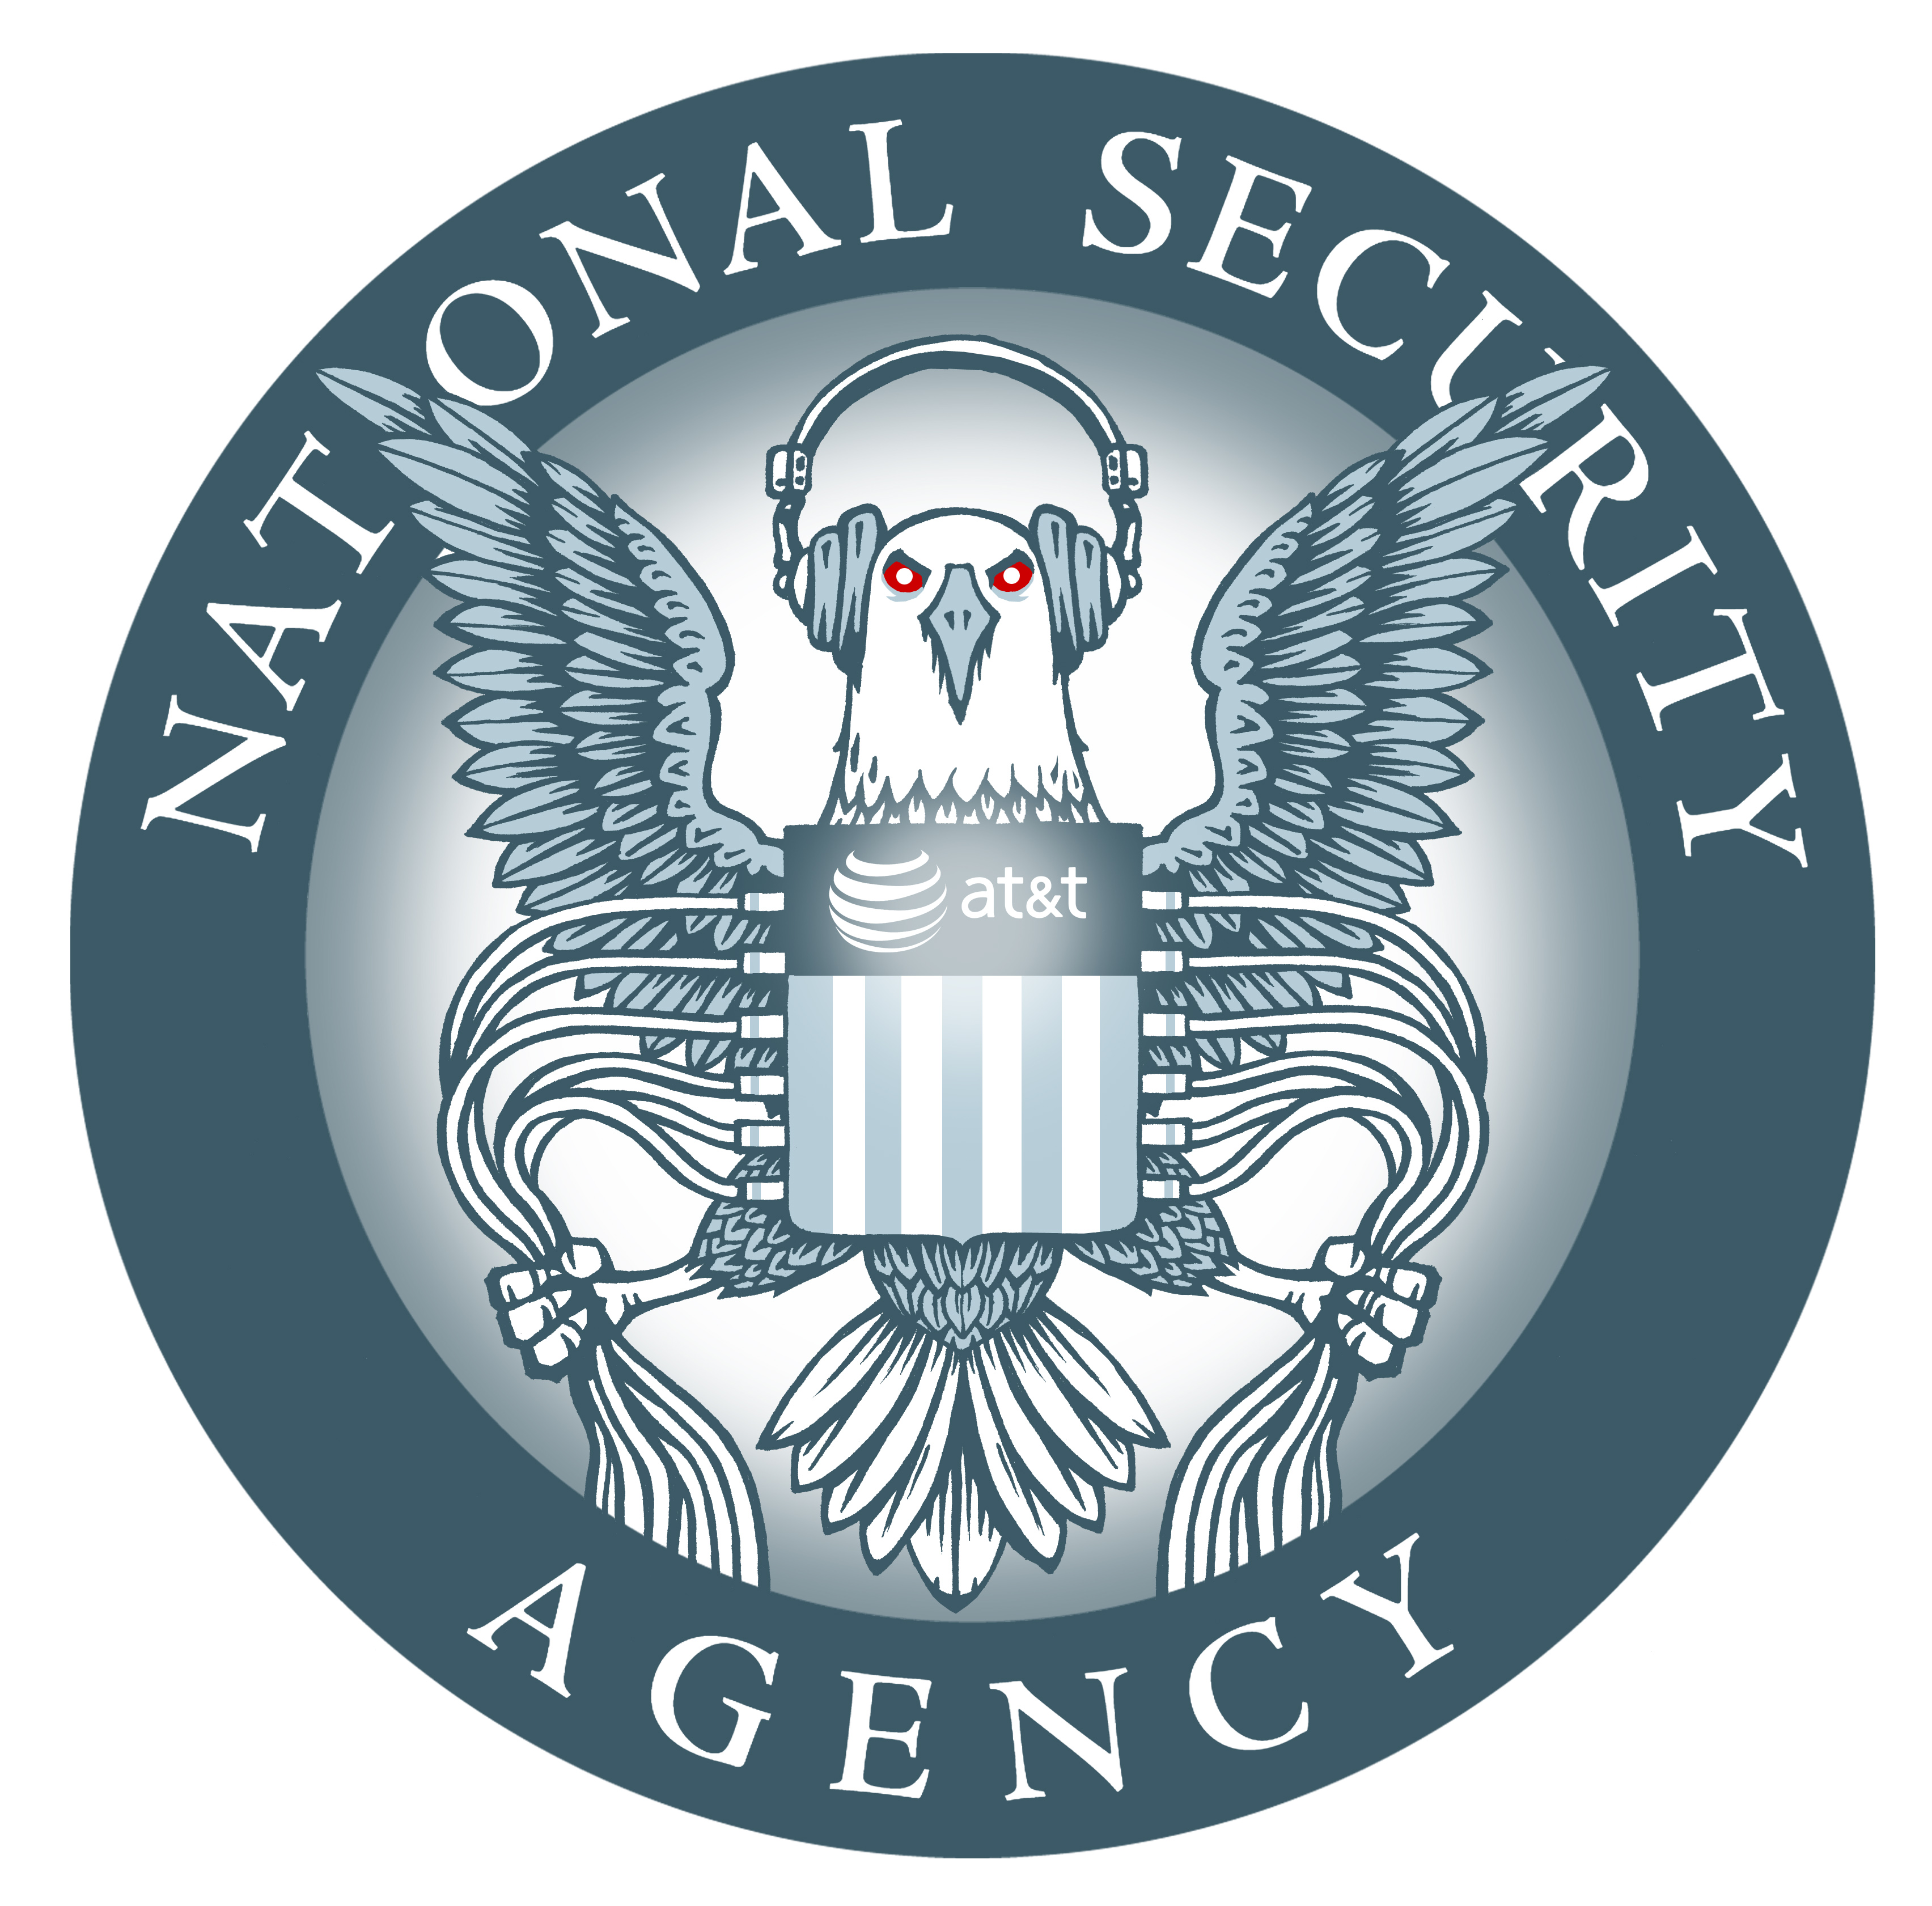 https://www.eff.org/files/nsa-eagle.jpg